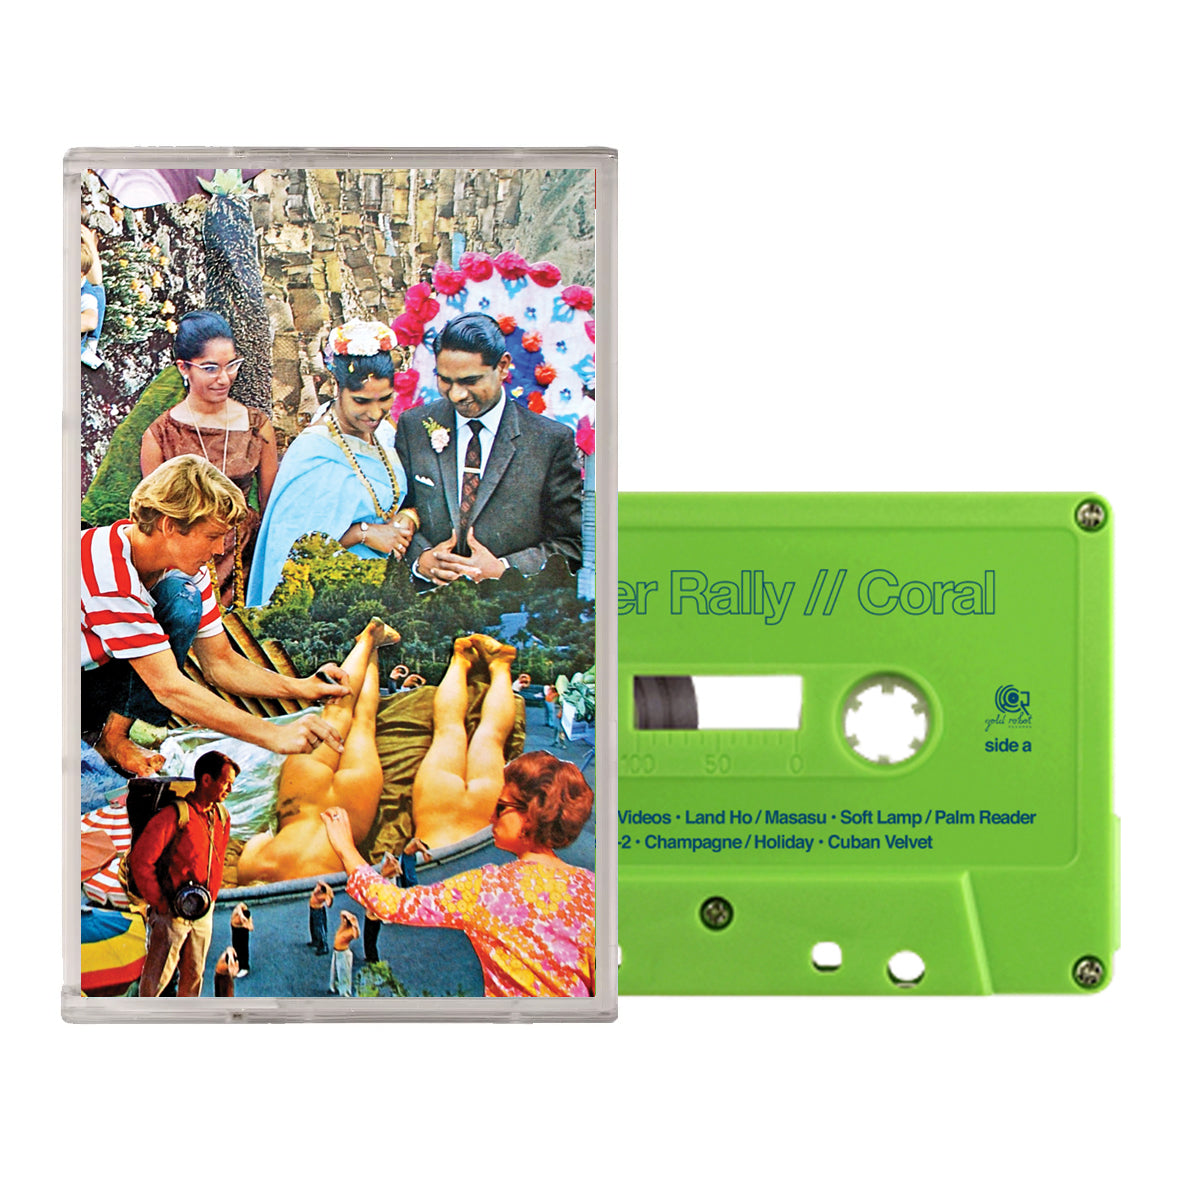 Monster Rally // Coral Cassette Tape